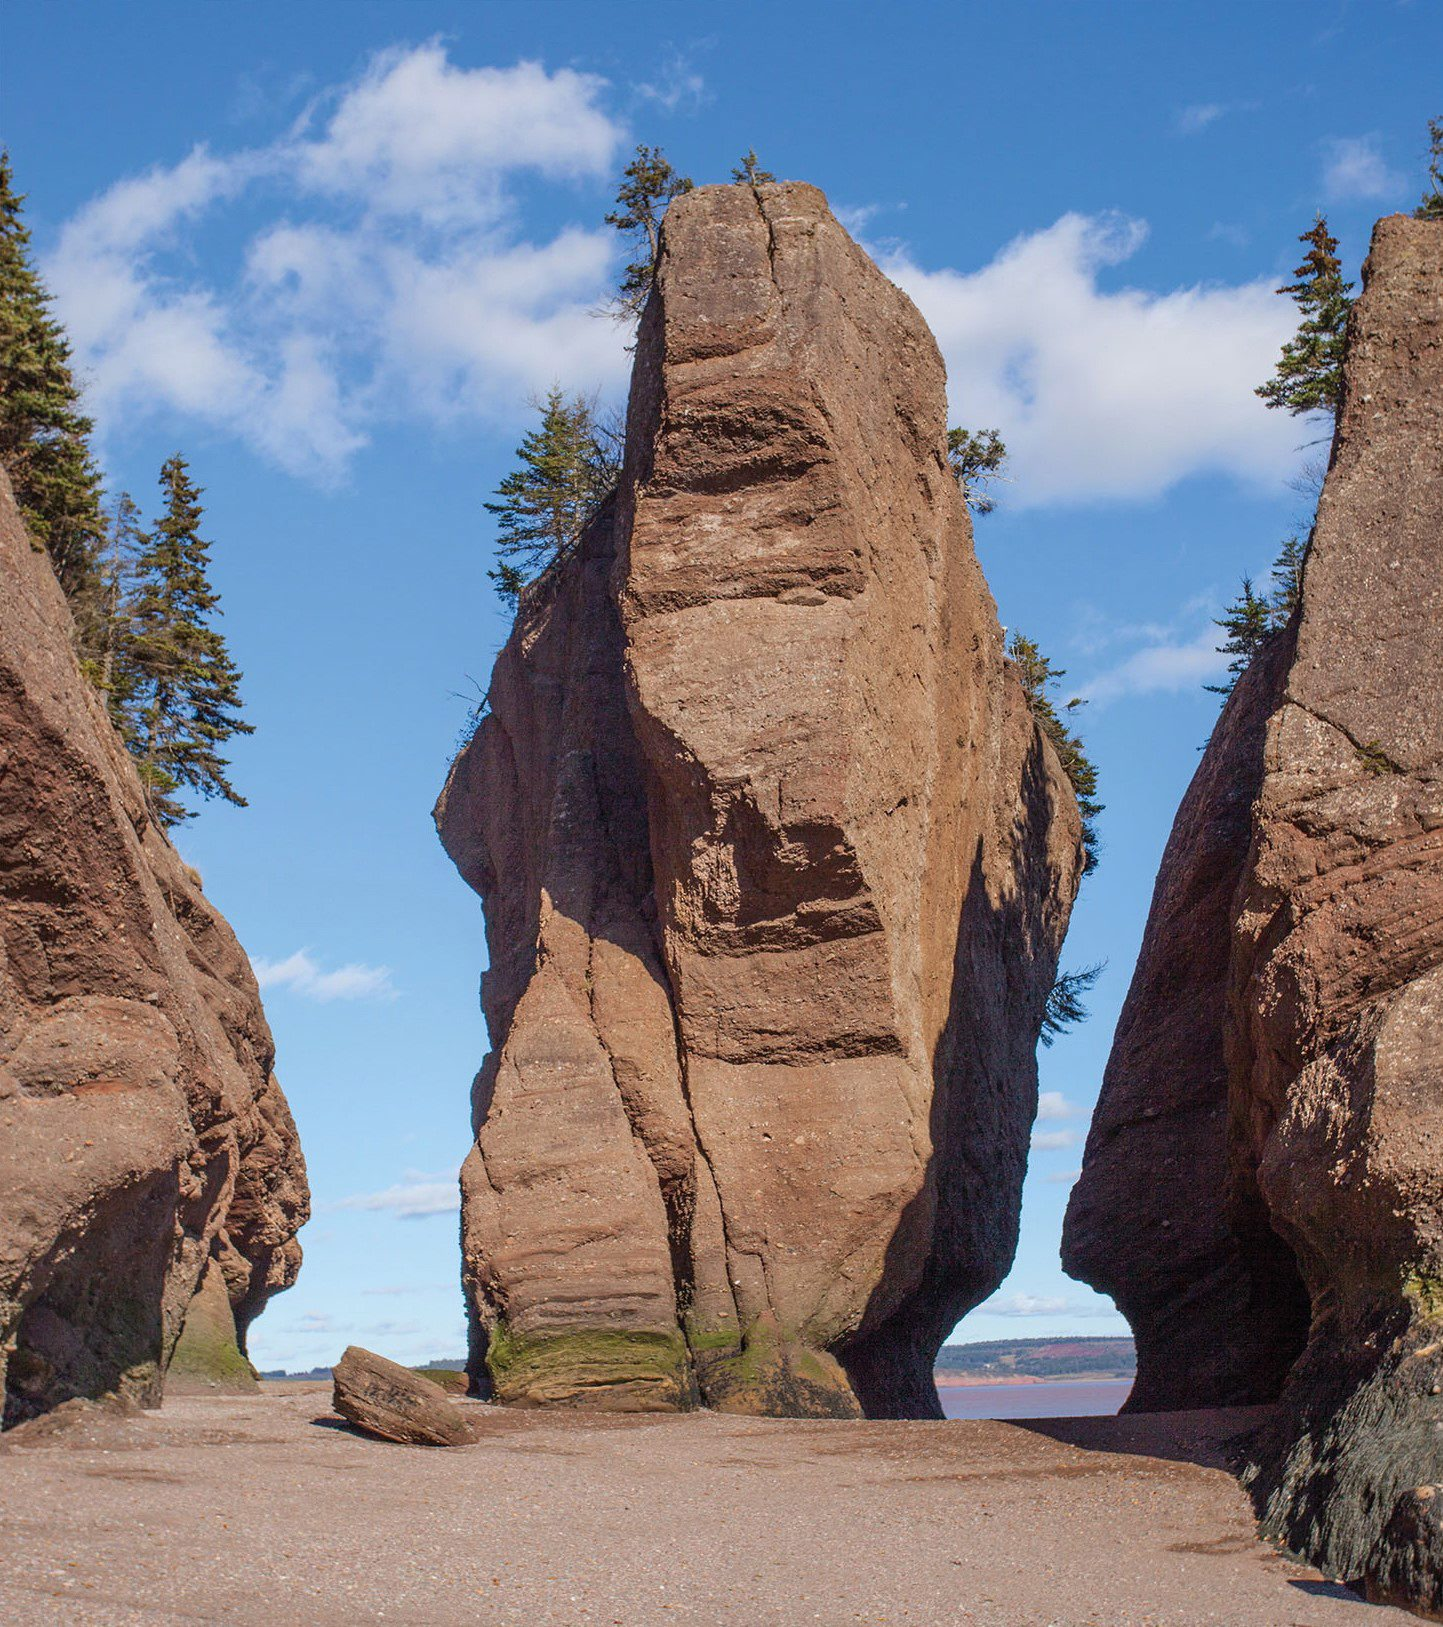 The flowerpot rock known as Elephant Rock formation is shown before it's collapse, in Hopewell Cape, N.B., in this October 29, 2013, handout photo. THE CANADIAN PRESS/HO - Kevin Snair